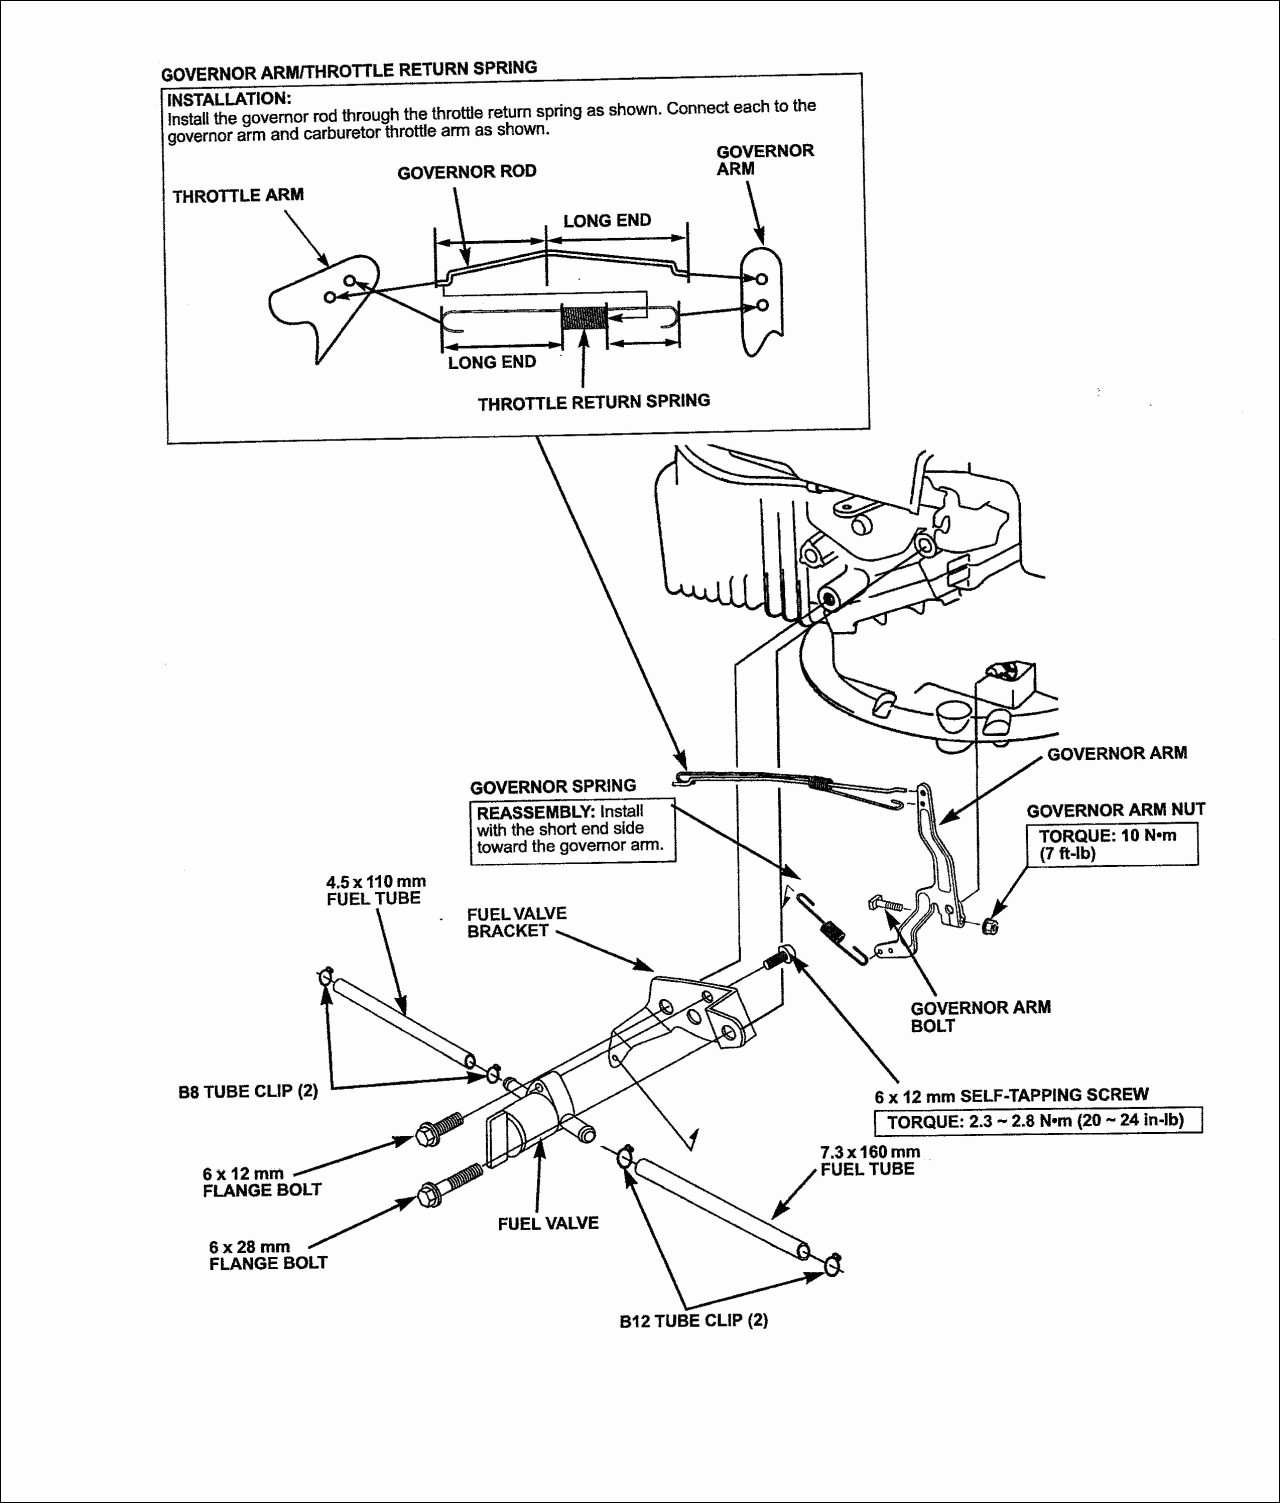 infiniti alternator wiring diagram wiring library 1993 Camry Fuse Box infiniti q45 engine diagram 1997 infiniti i30 fuse box diagram infiniti wiring diagrams of infiniti q45